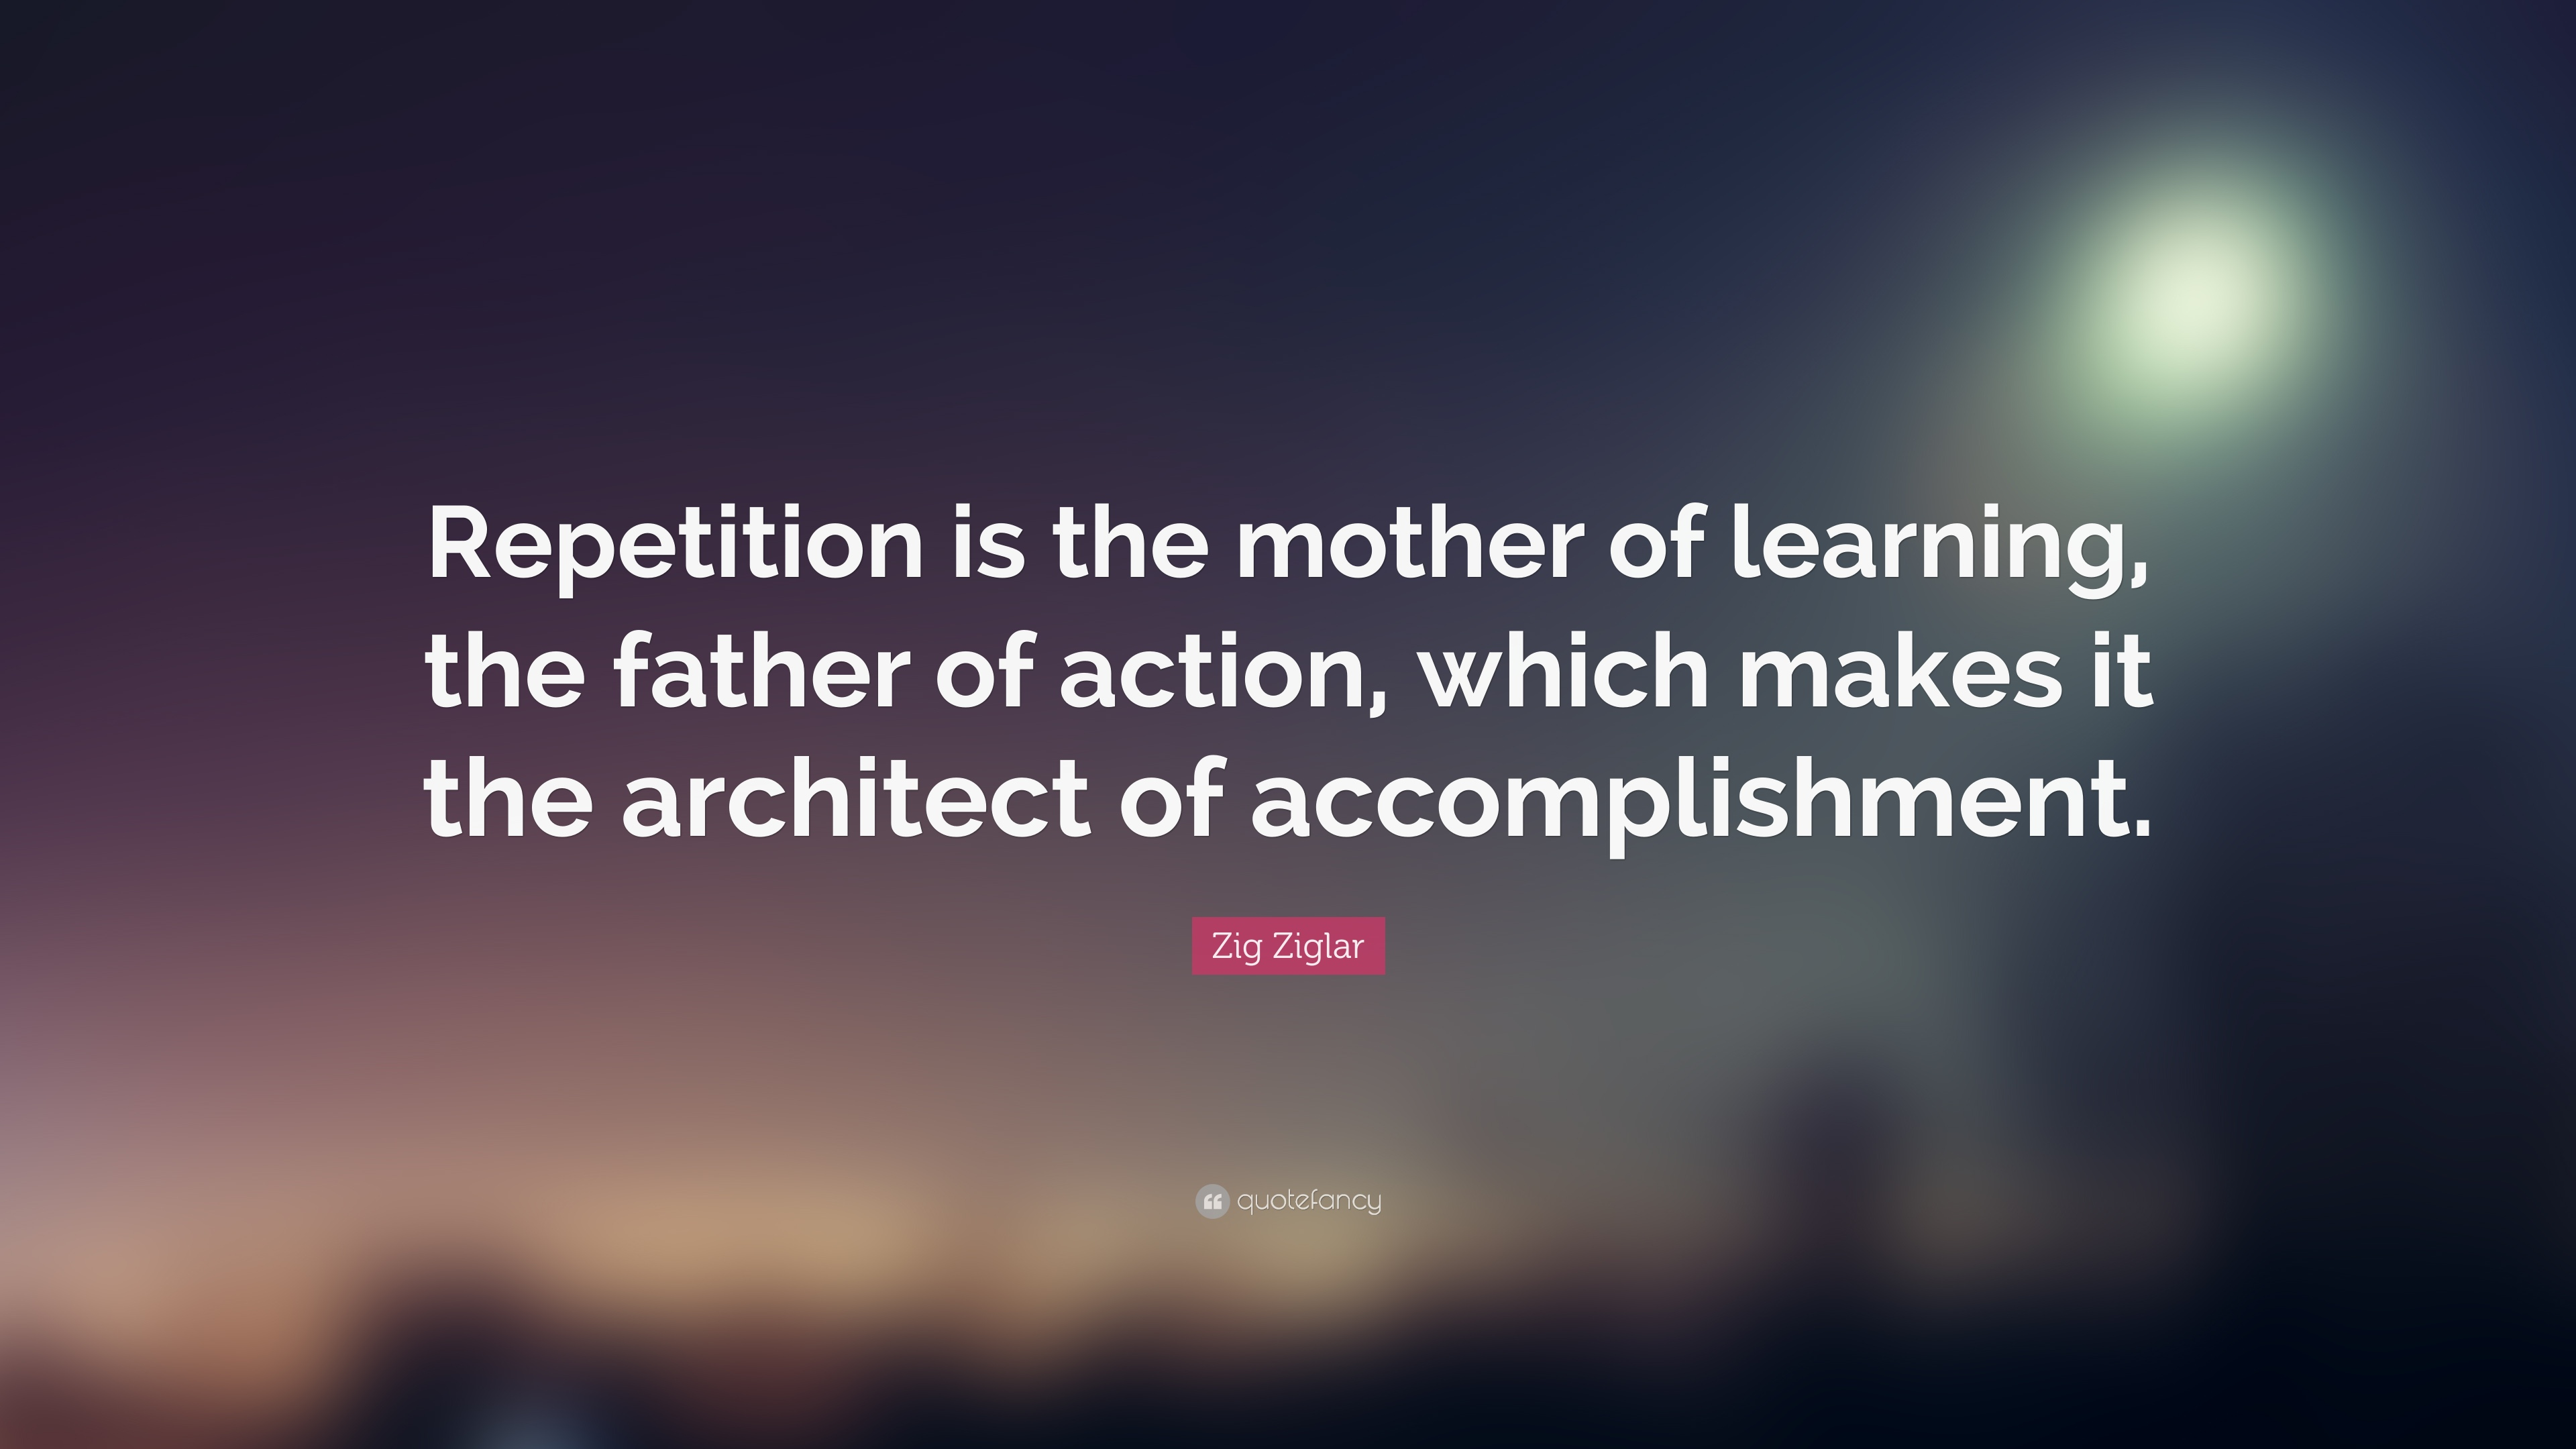 Worksheet Repetition In Learning zig ziglar quote is the mother of learning father action